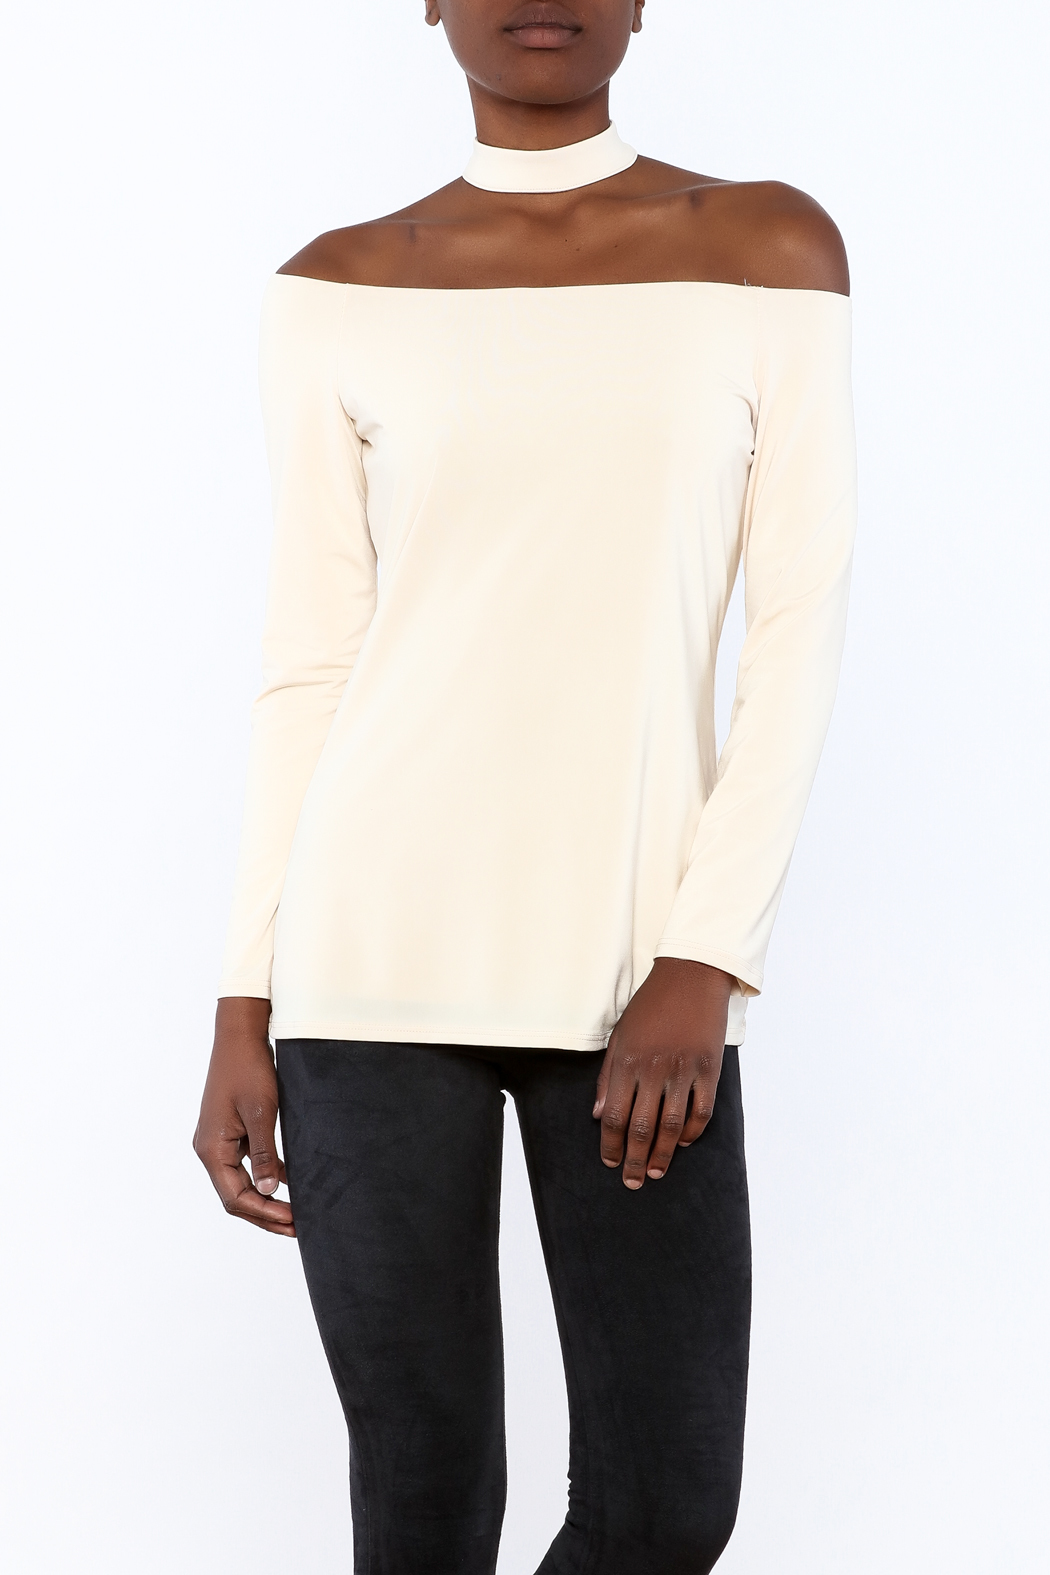 Lisa & Lucy Oyster Choker Top - Main Image